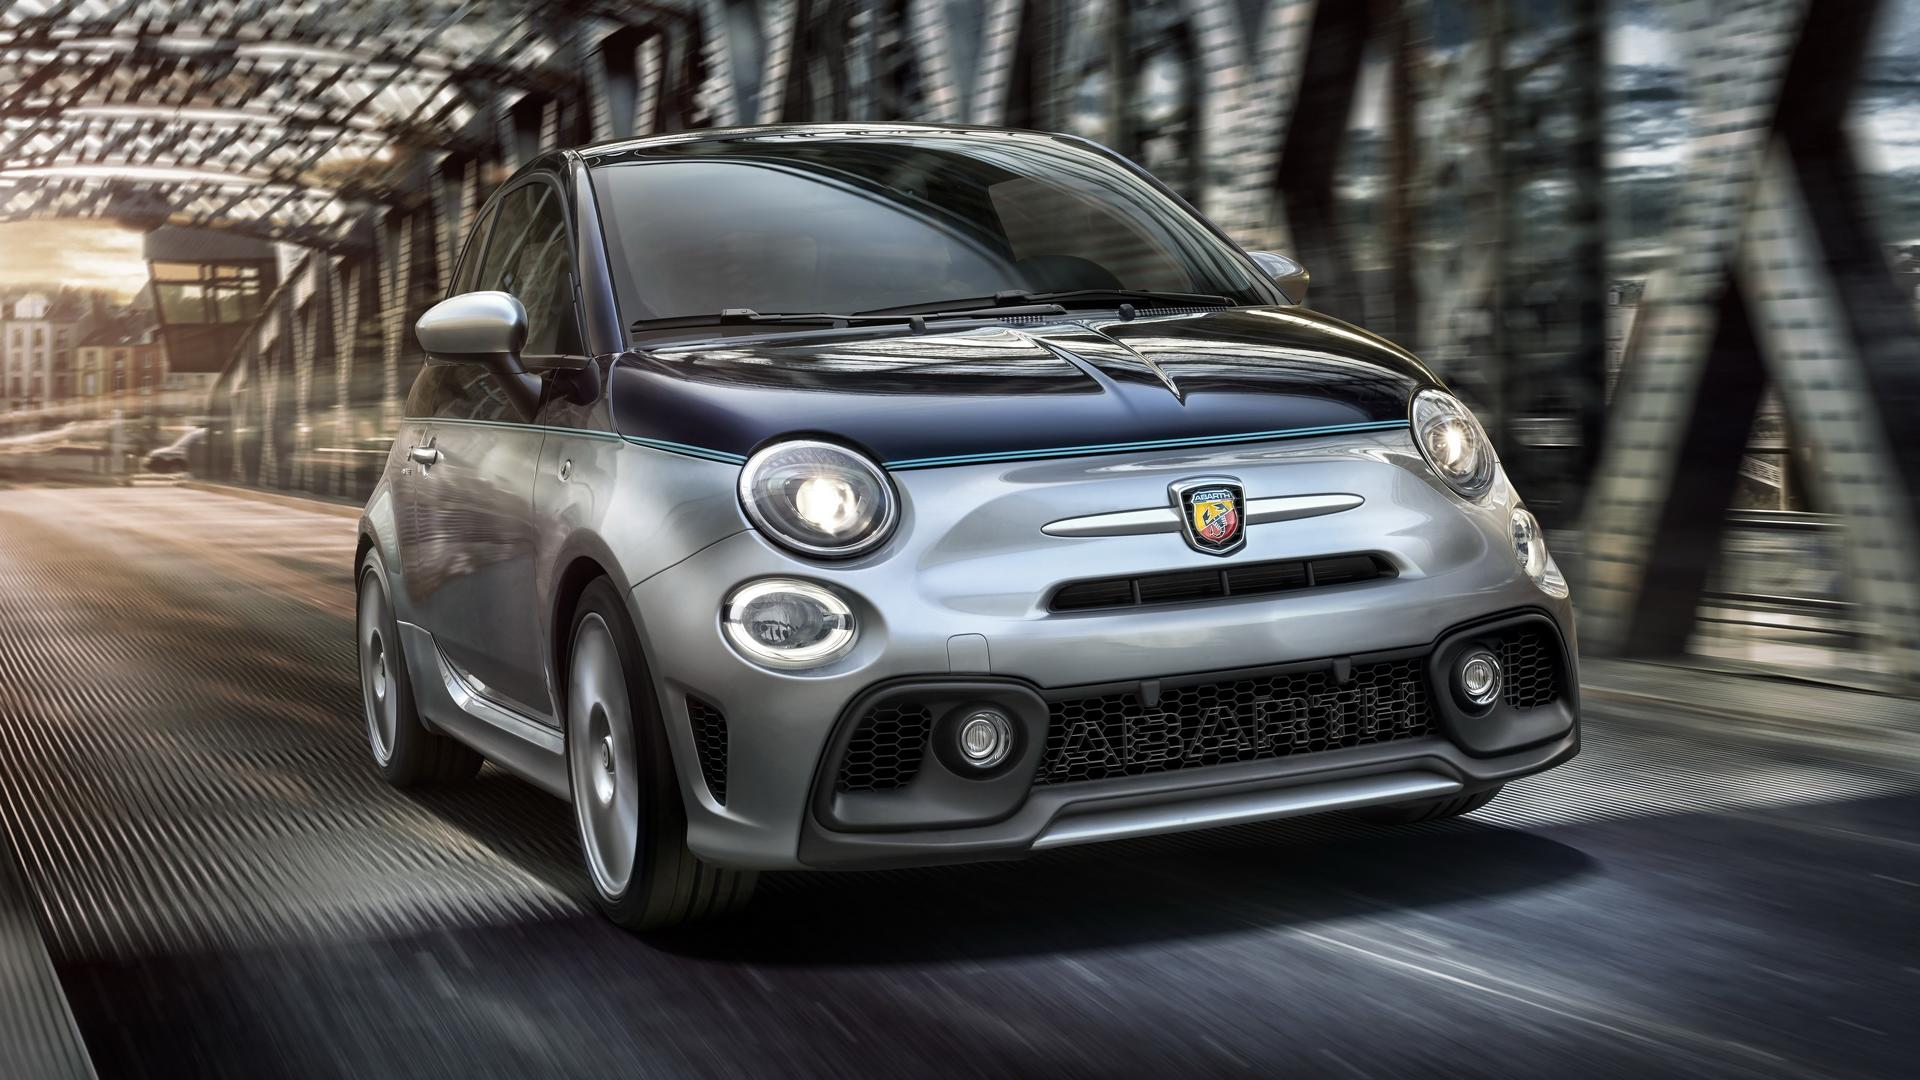 abarth pays tribute to riva with 695 rivale 175th anniversary